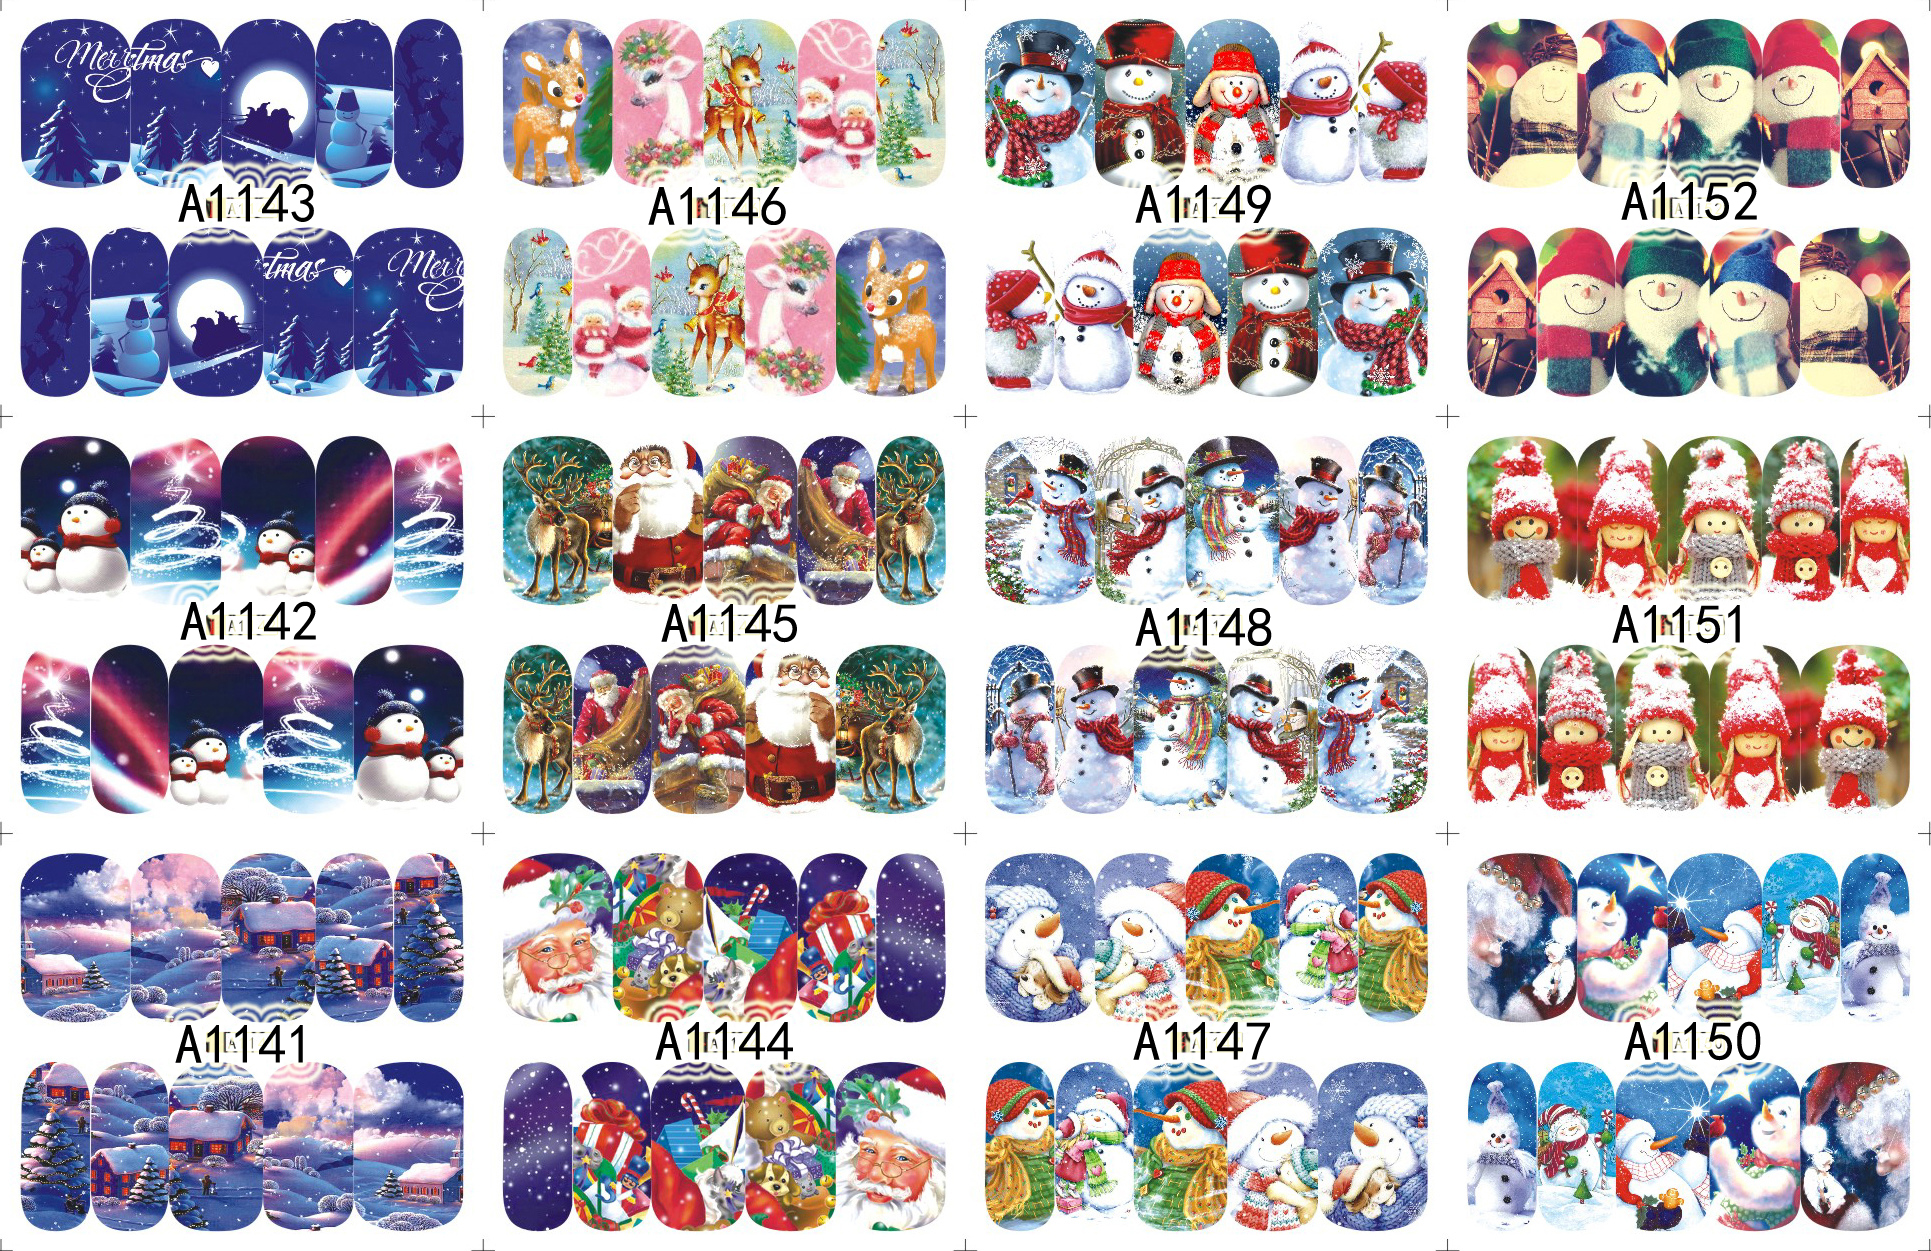 12 Sheets/Lot Nail A1141-1152 Beauty Snow Christmas XMAS Full Cover Nail Art Water Wraps Sticker Decal For Nail(12 DESIGNS IN 1)<br><br>Aliexpress